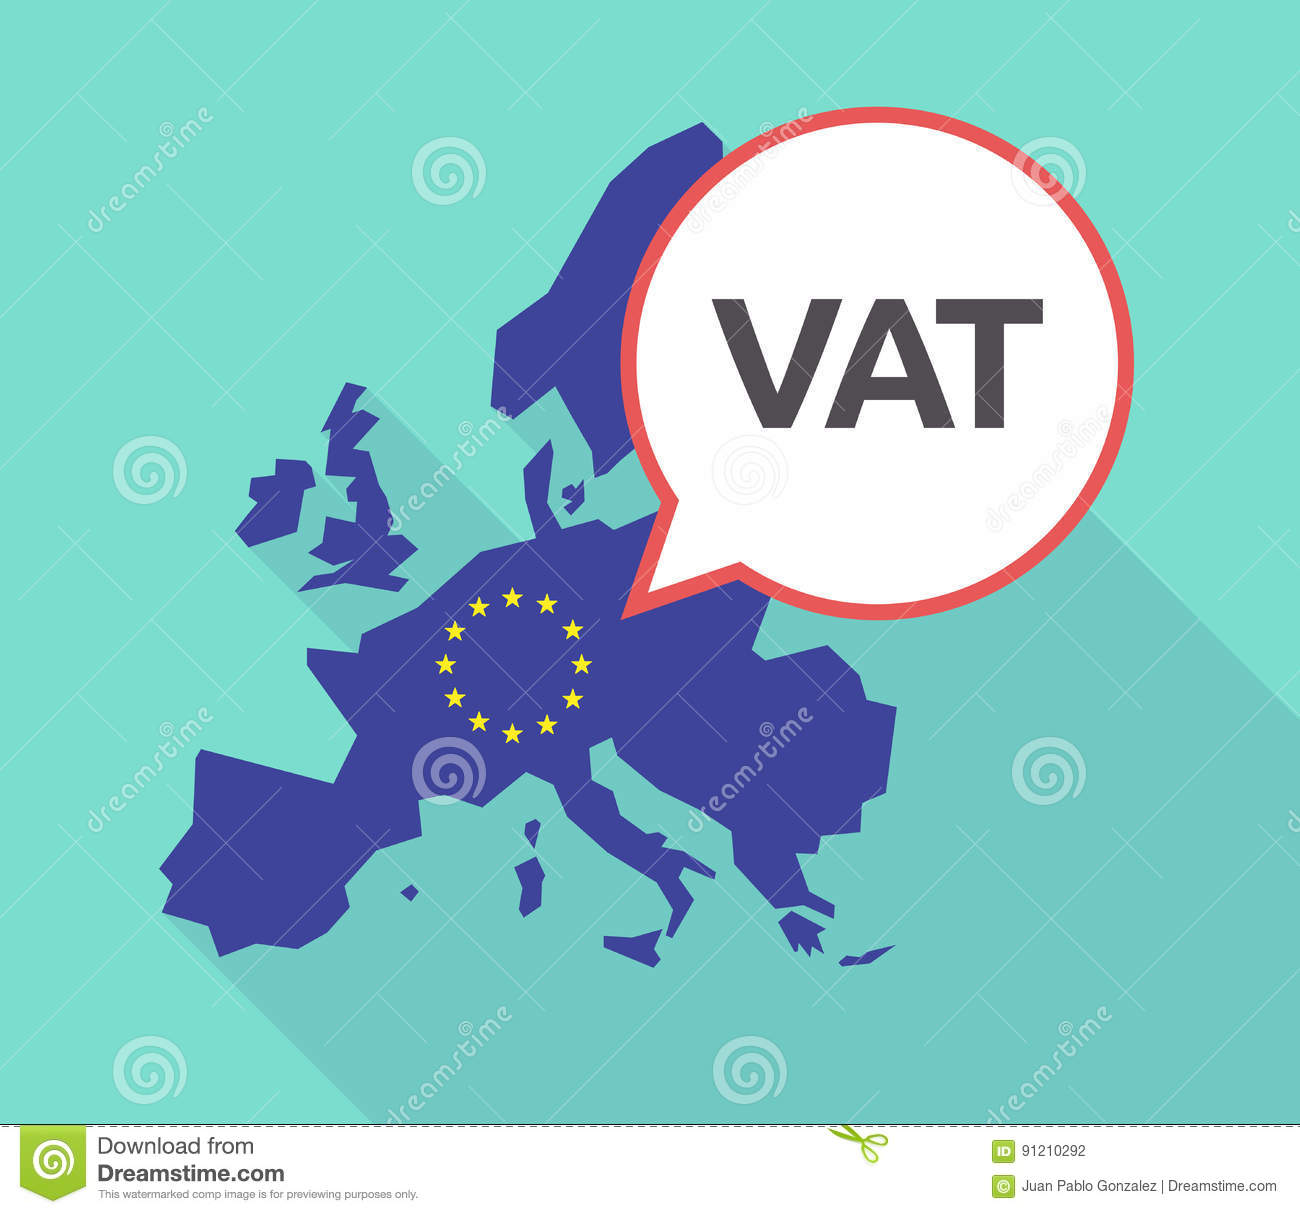 Long shadow EU map with the value added tax acronym VAT